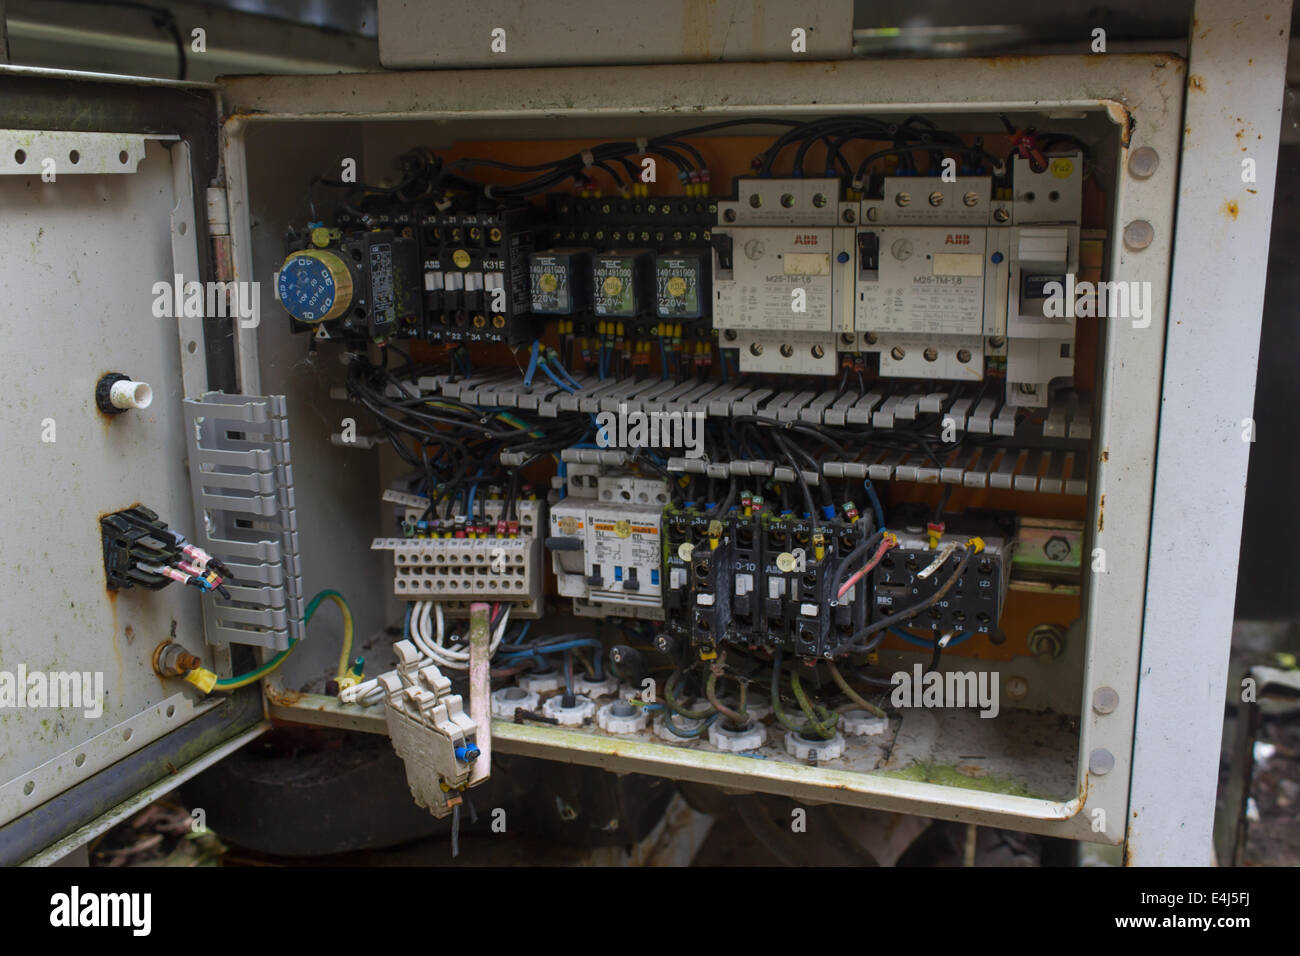 An image showing an old electrical box with RCCB components and ...